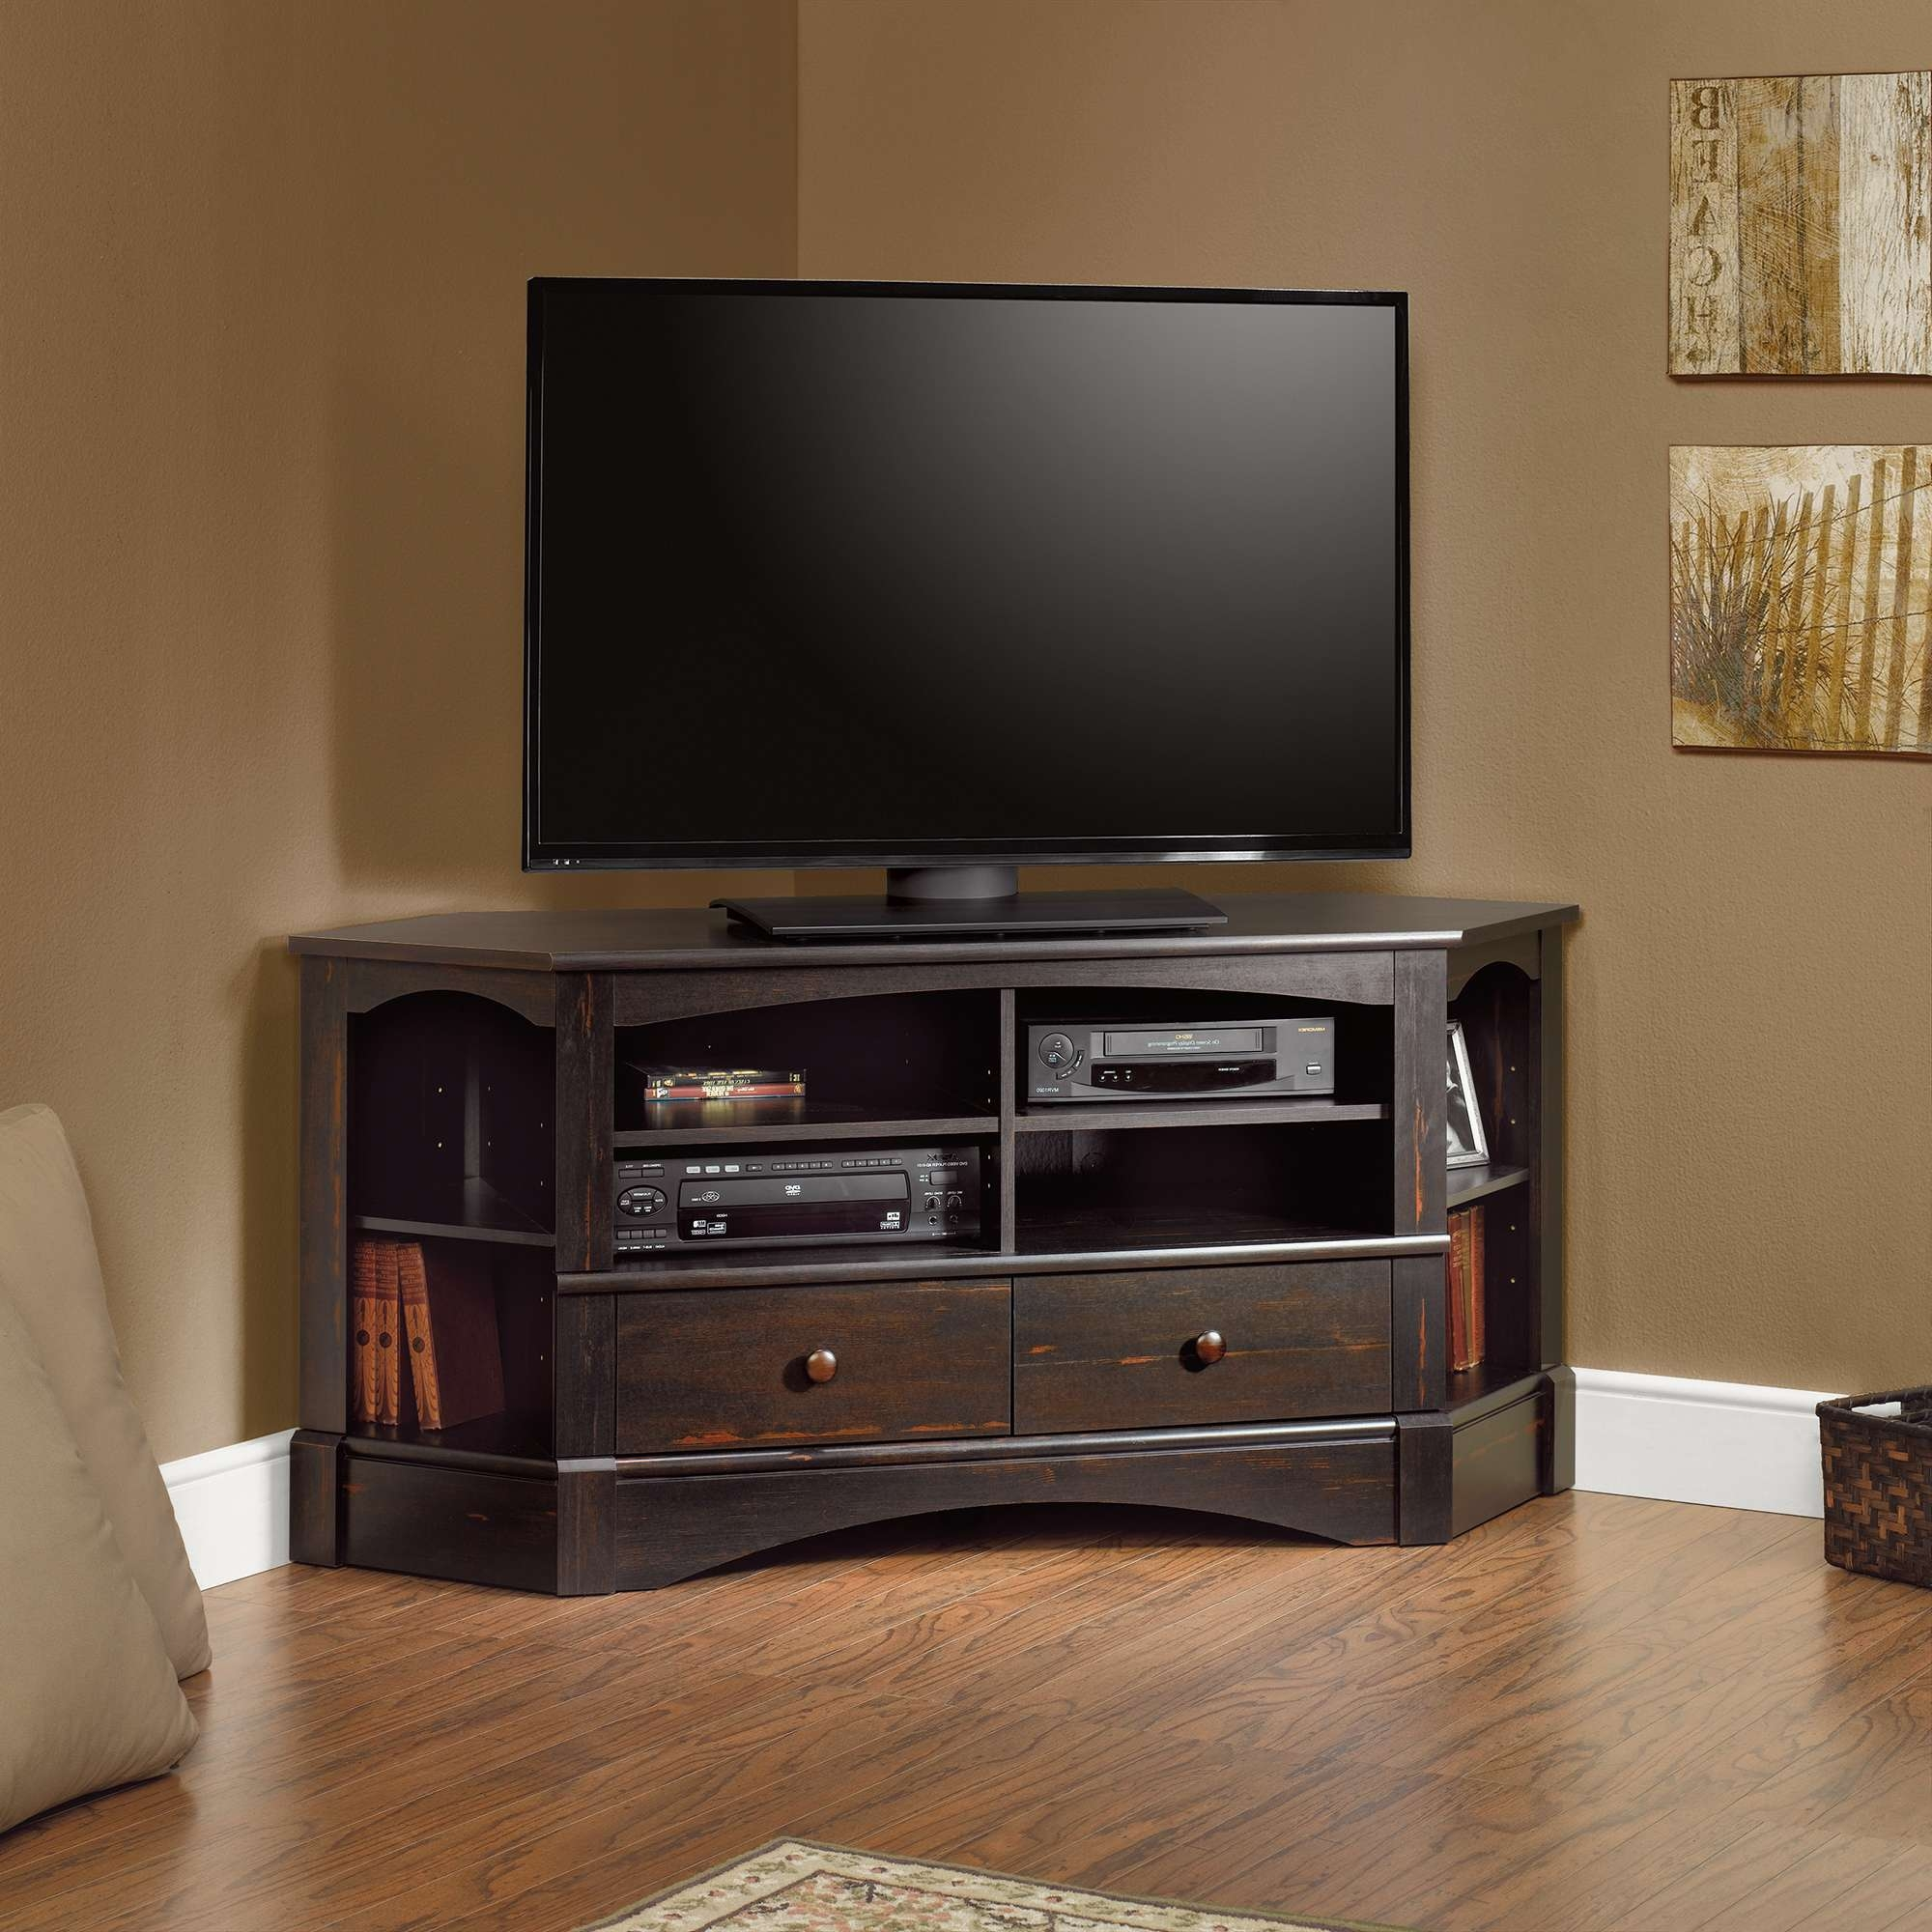 Fancy Matte Varnished Dark Oak Wood Tall Corner Tv Stand For For Fancy Tv Stands (View 4 of 15)